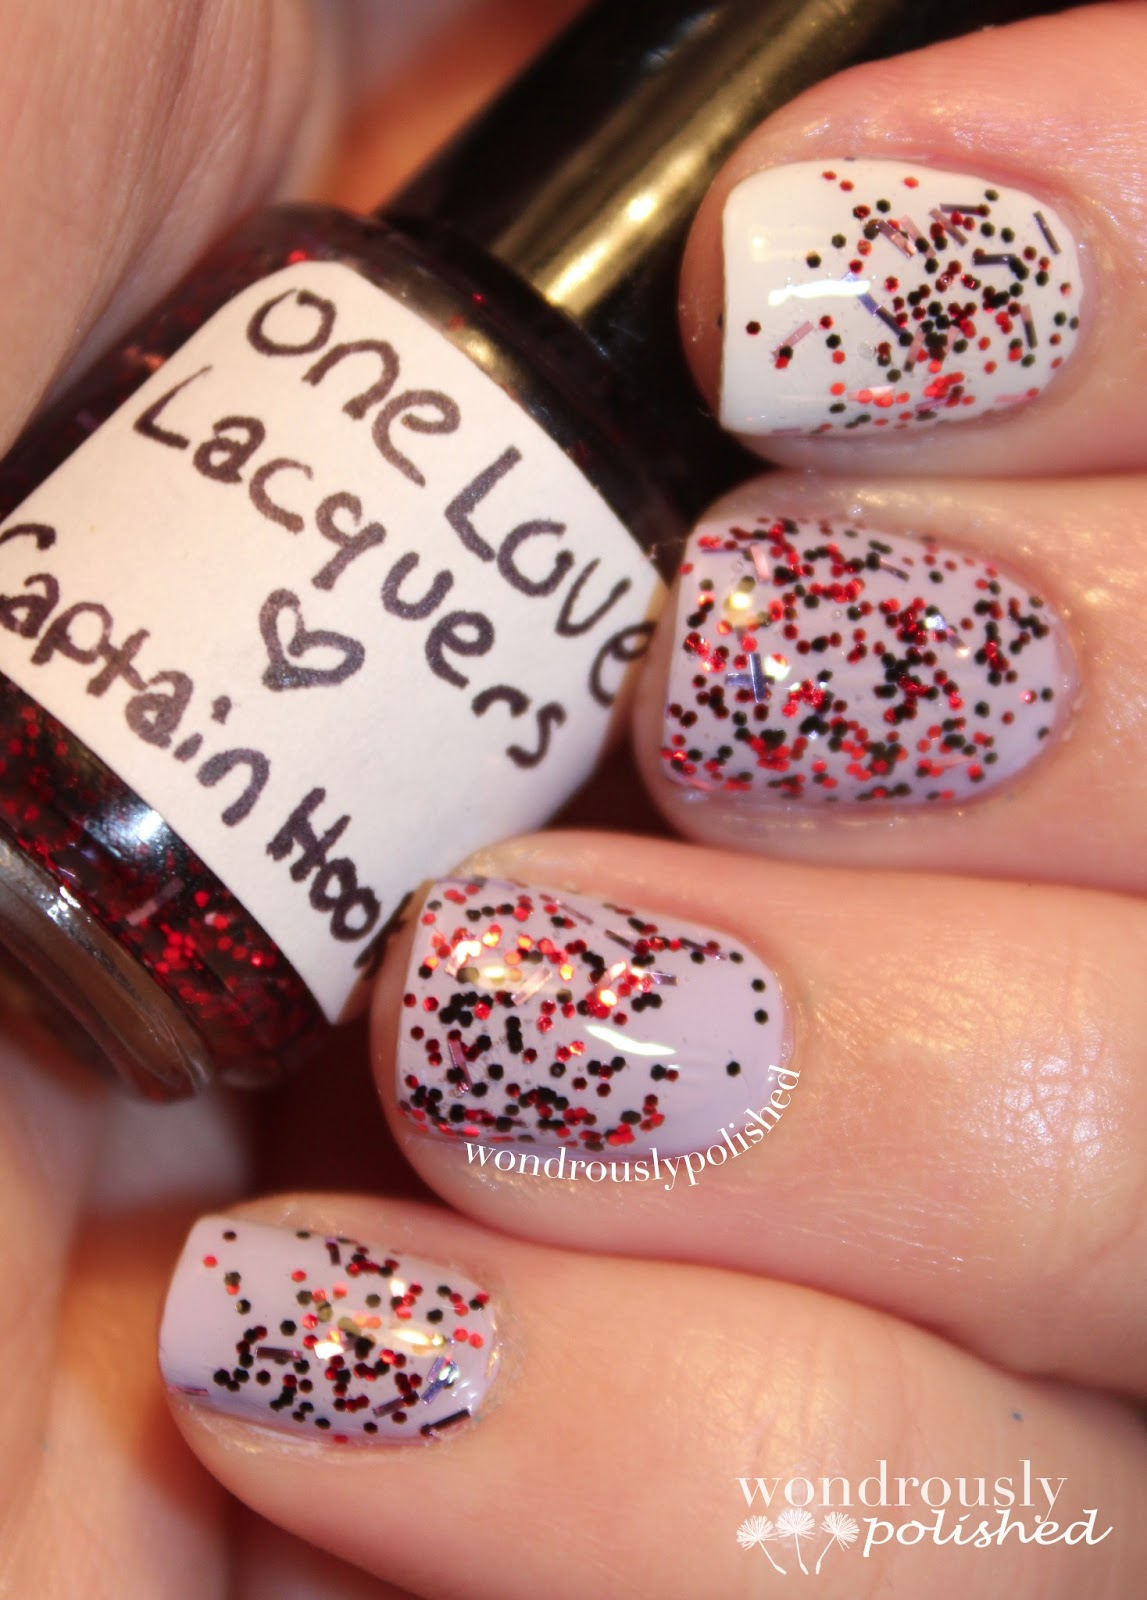 Wondrously Polished April Nail Art Challenge: Wondrously Polished: One Love Lacquers Review